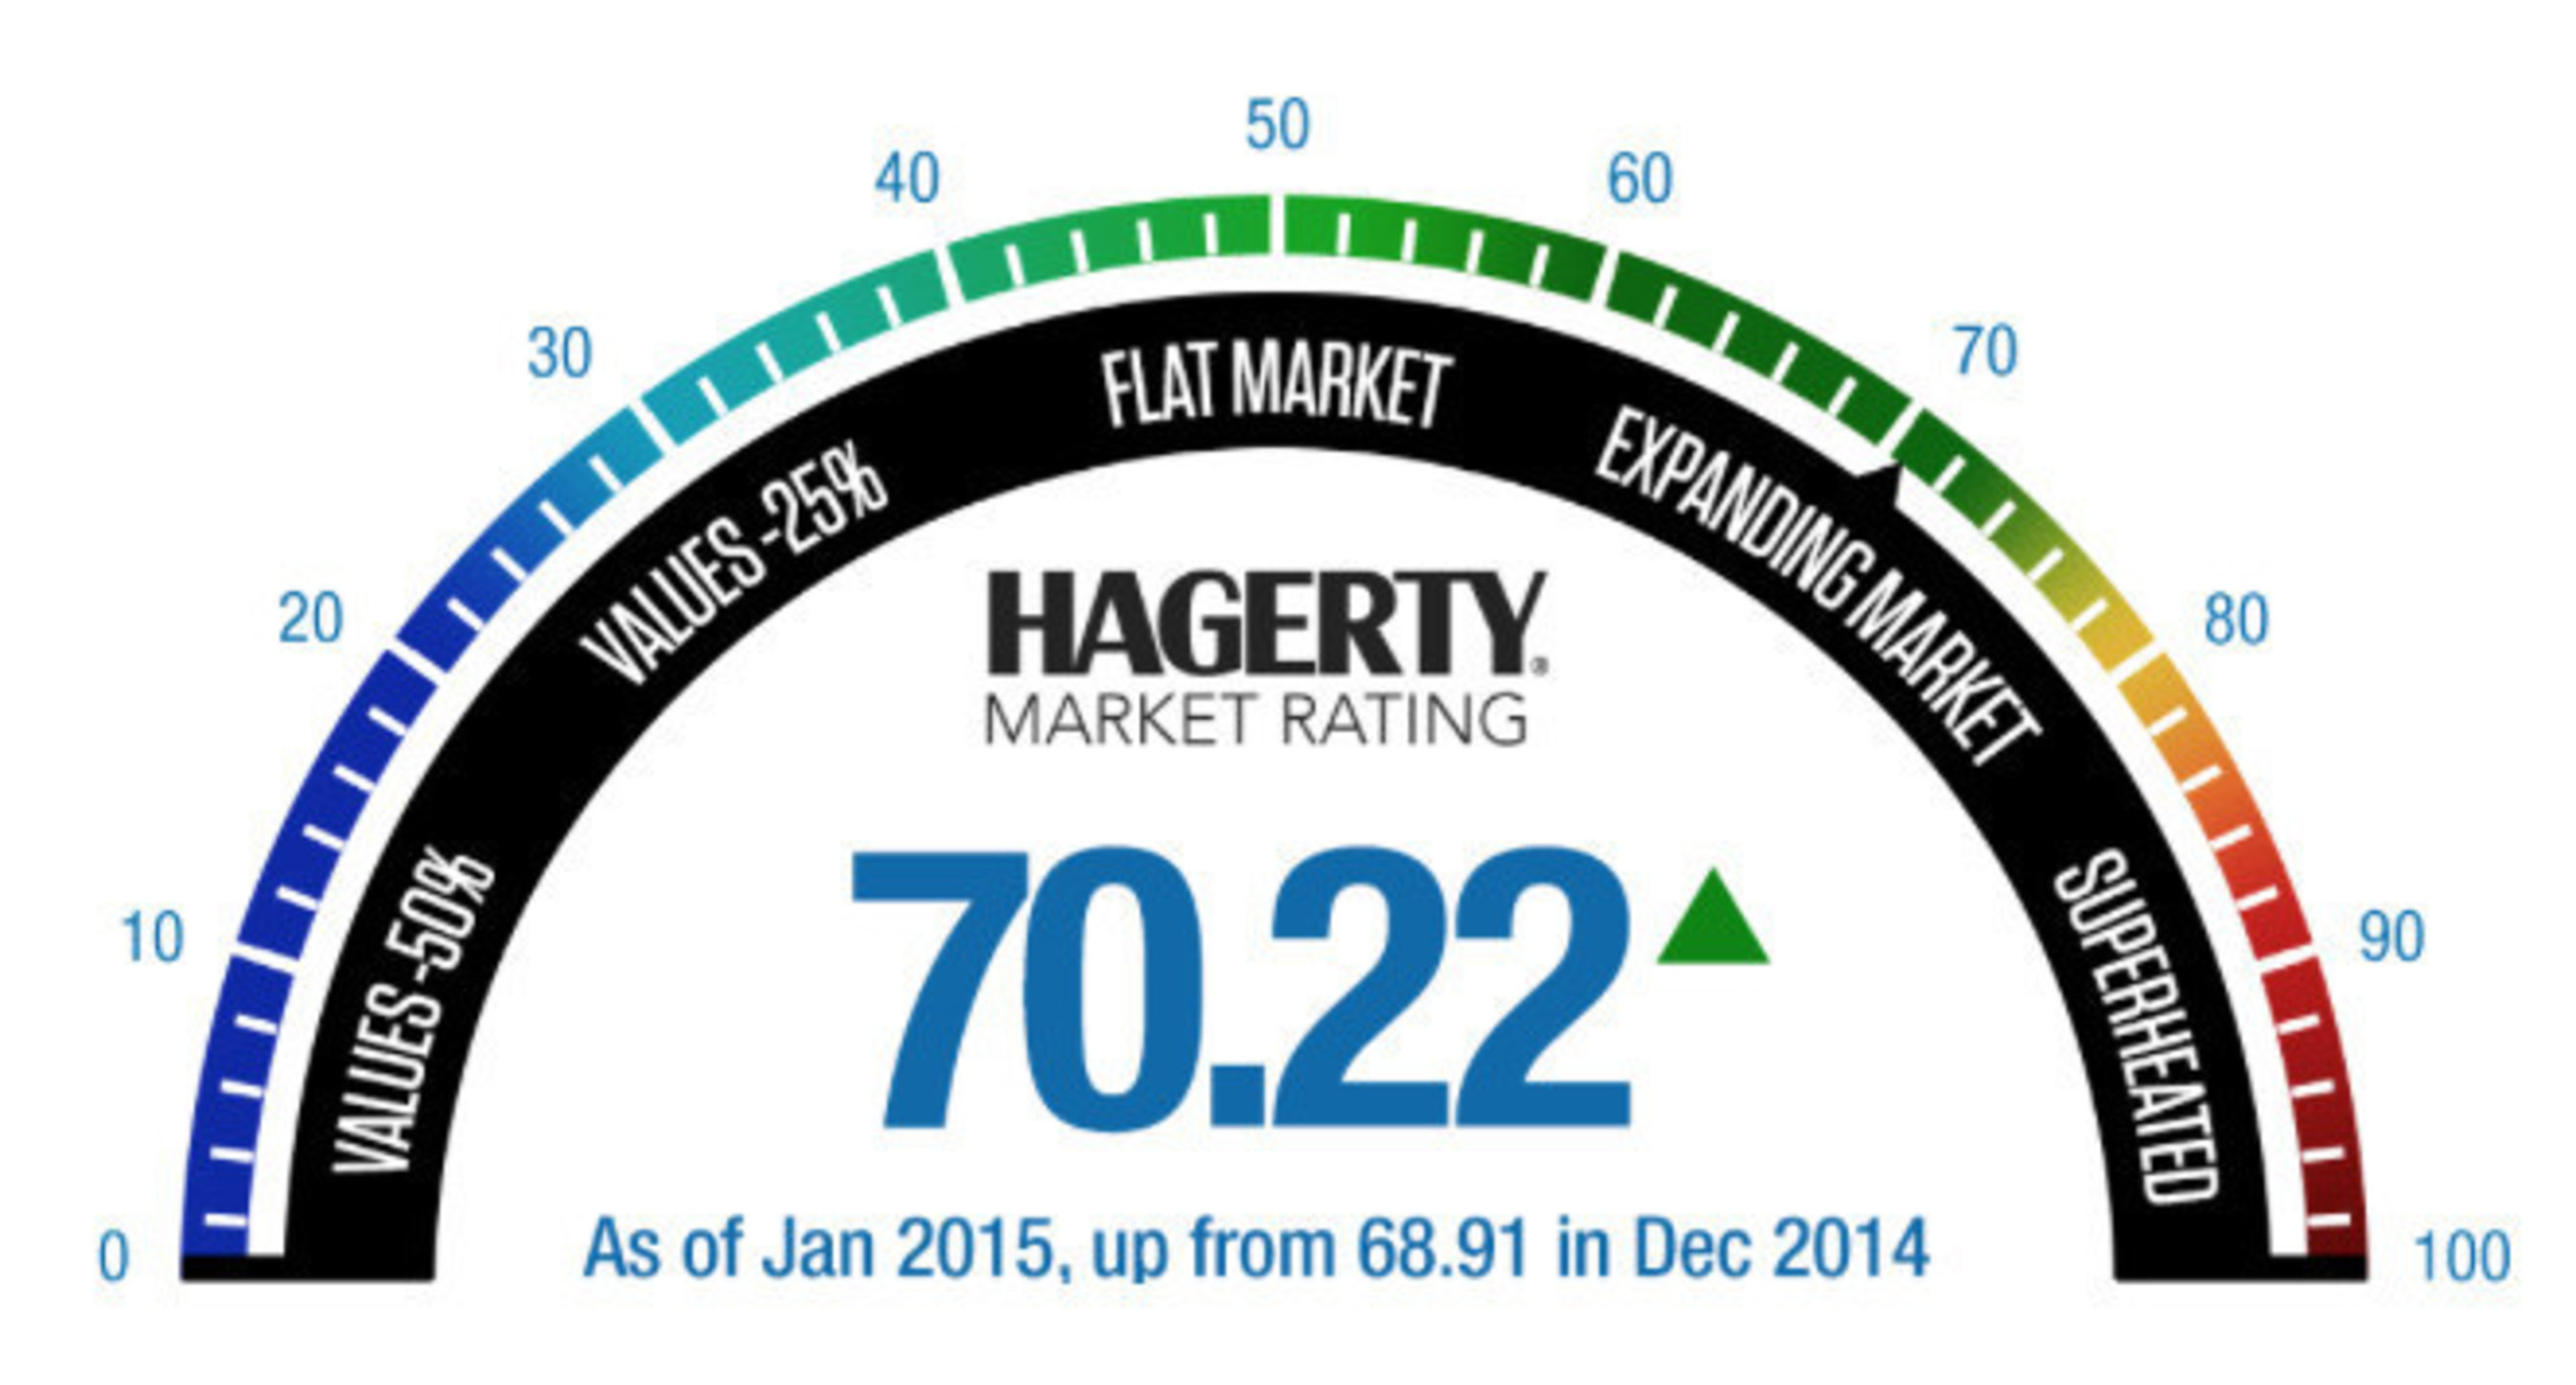 Hagerty Market Rating as of January 2015, up from 68.91 in December 2014. The Hagerty Market Rating is a new ...